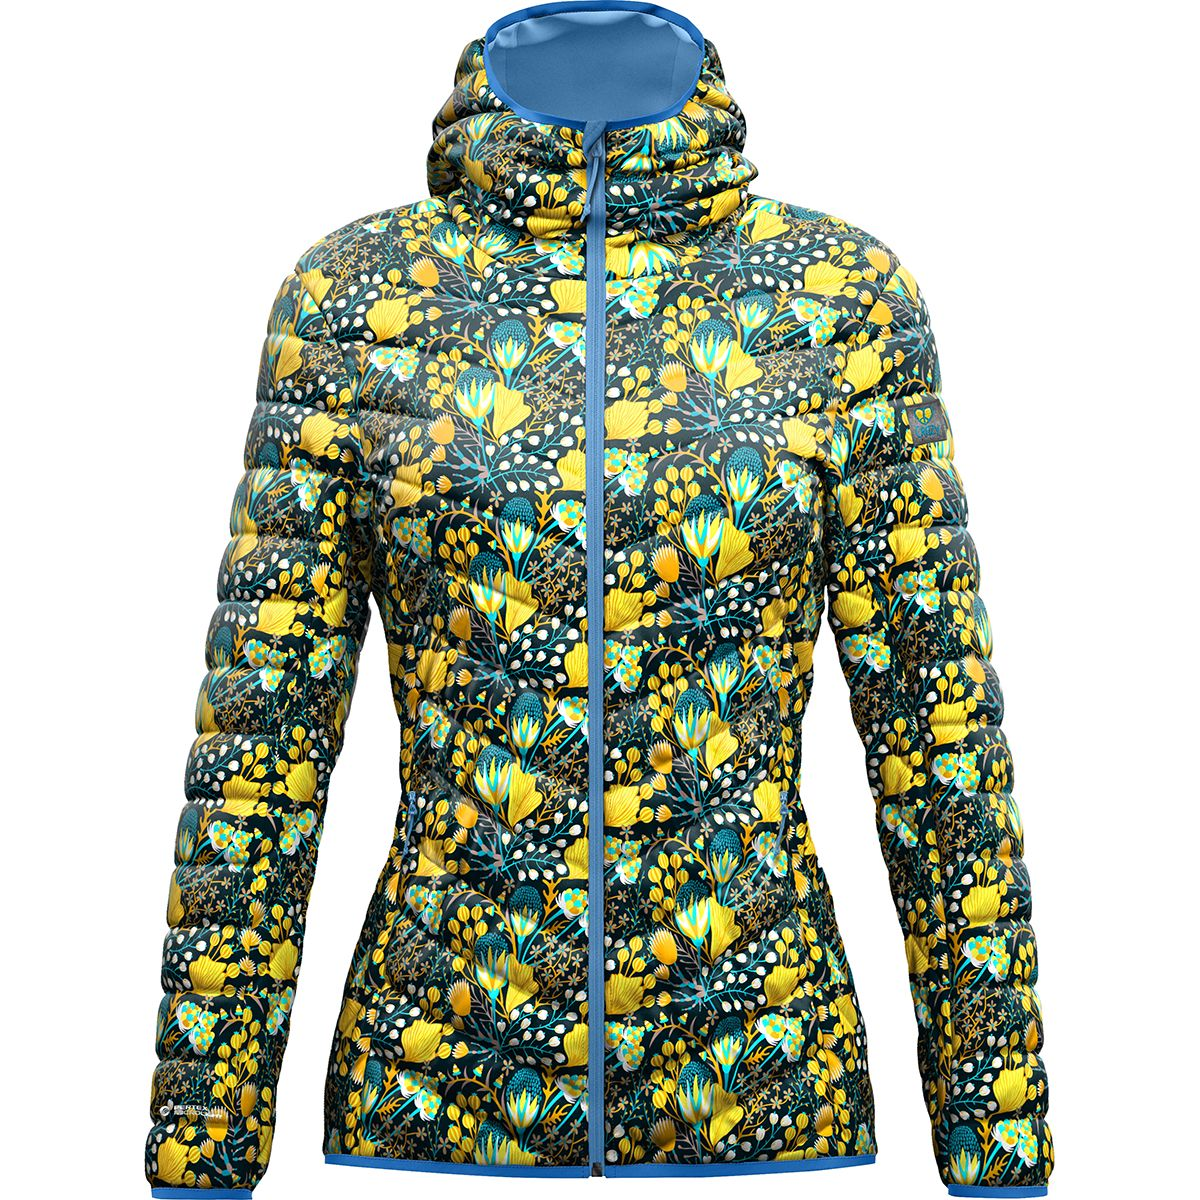 Crazy Idea Damen Summit Jacke (Gelb) | Isolationsjacken > Damen